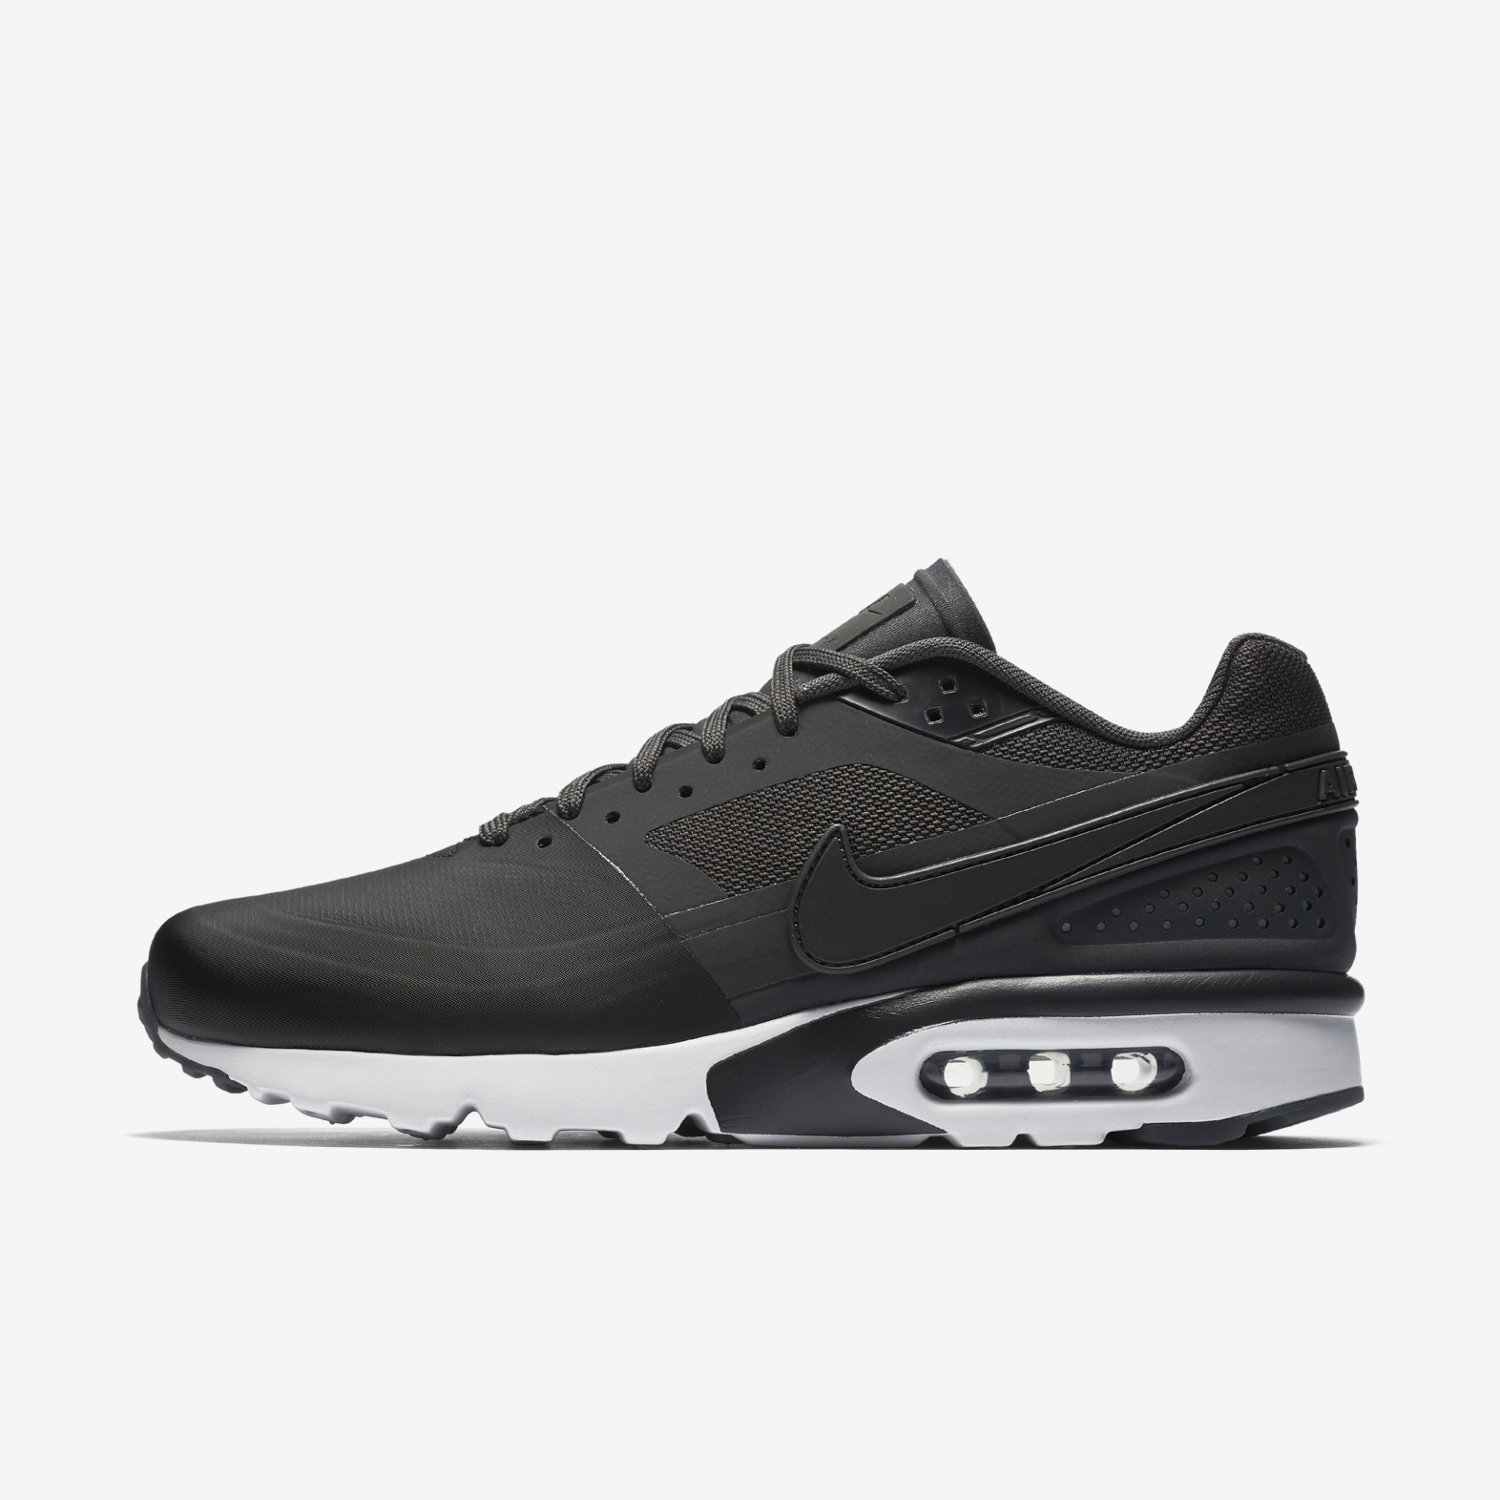 Nike Air Max Classic Bw Baby